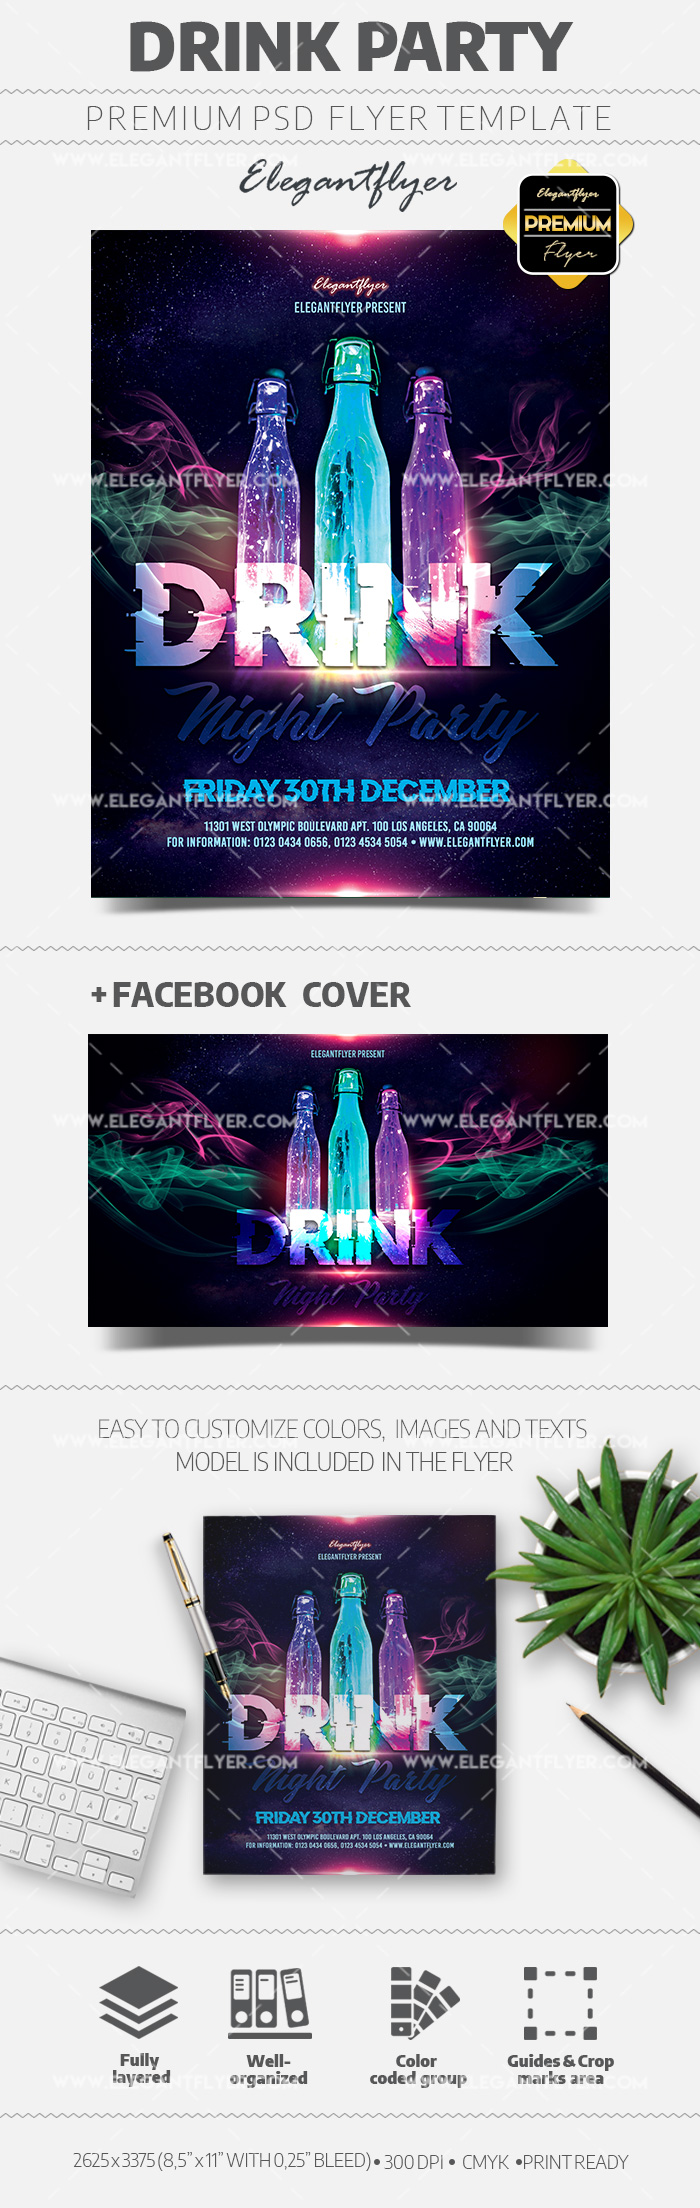 Drink Party Flyer Template in PSD